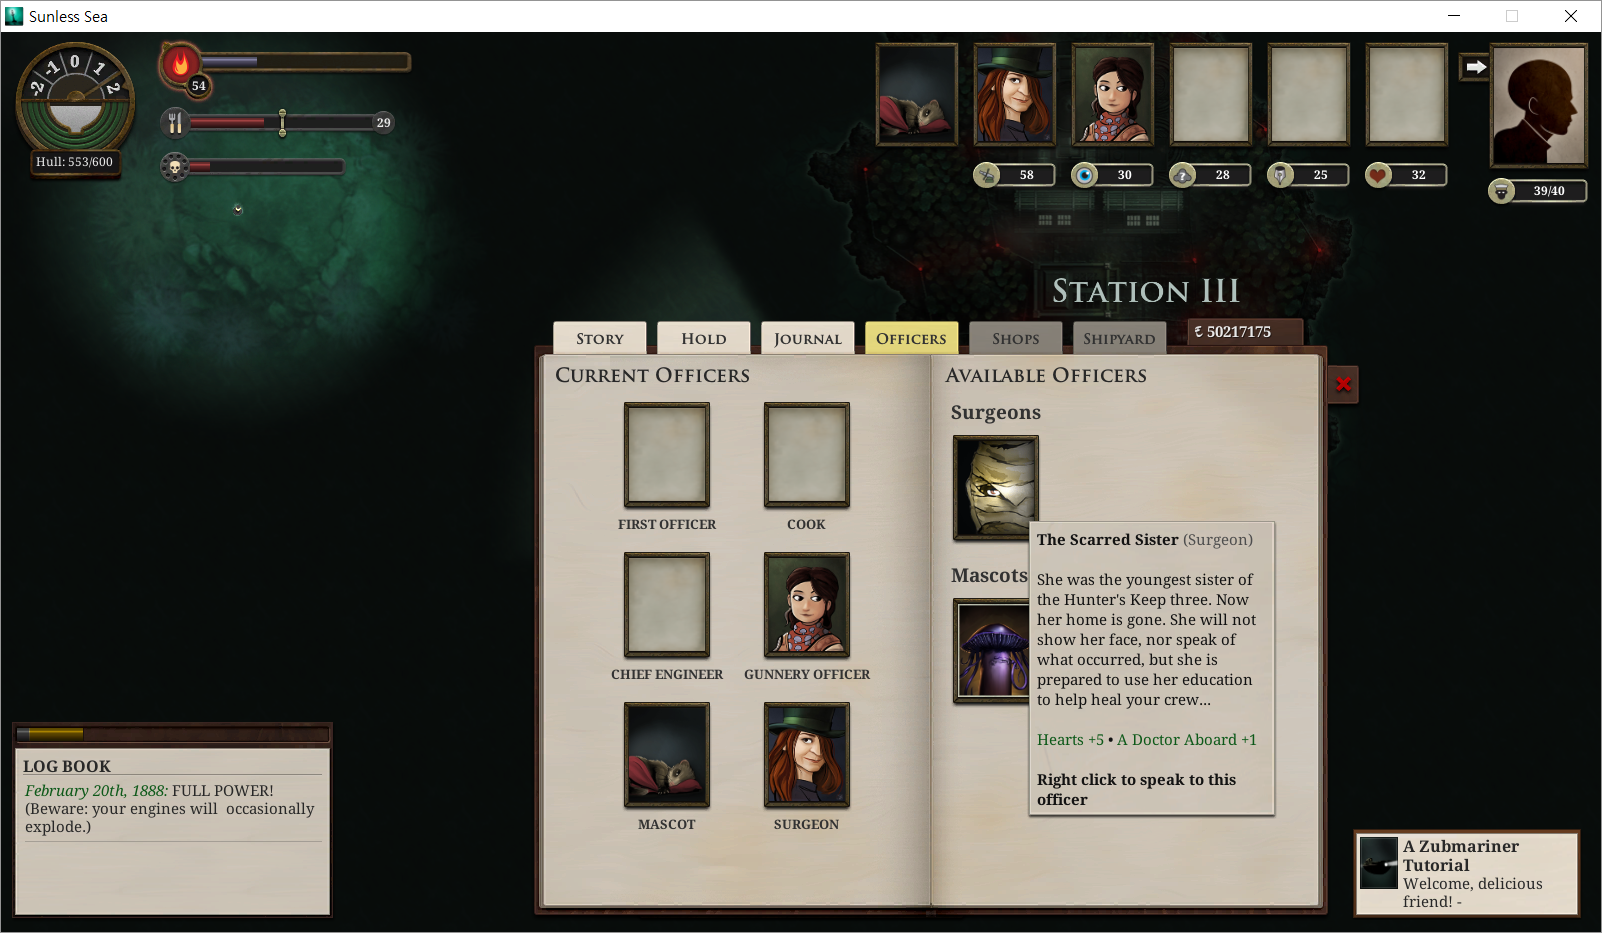 Sunless Sea 4 - 사관: Scarred Sister